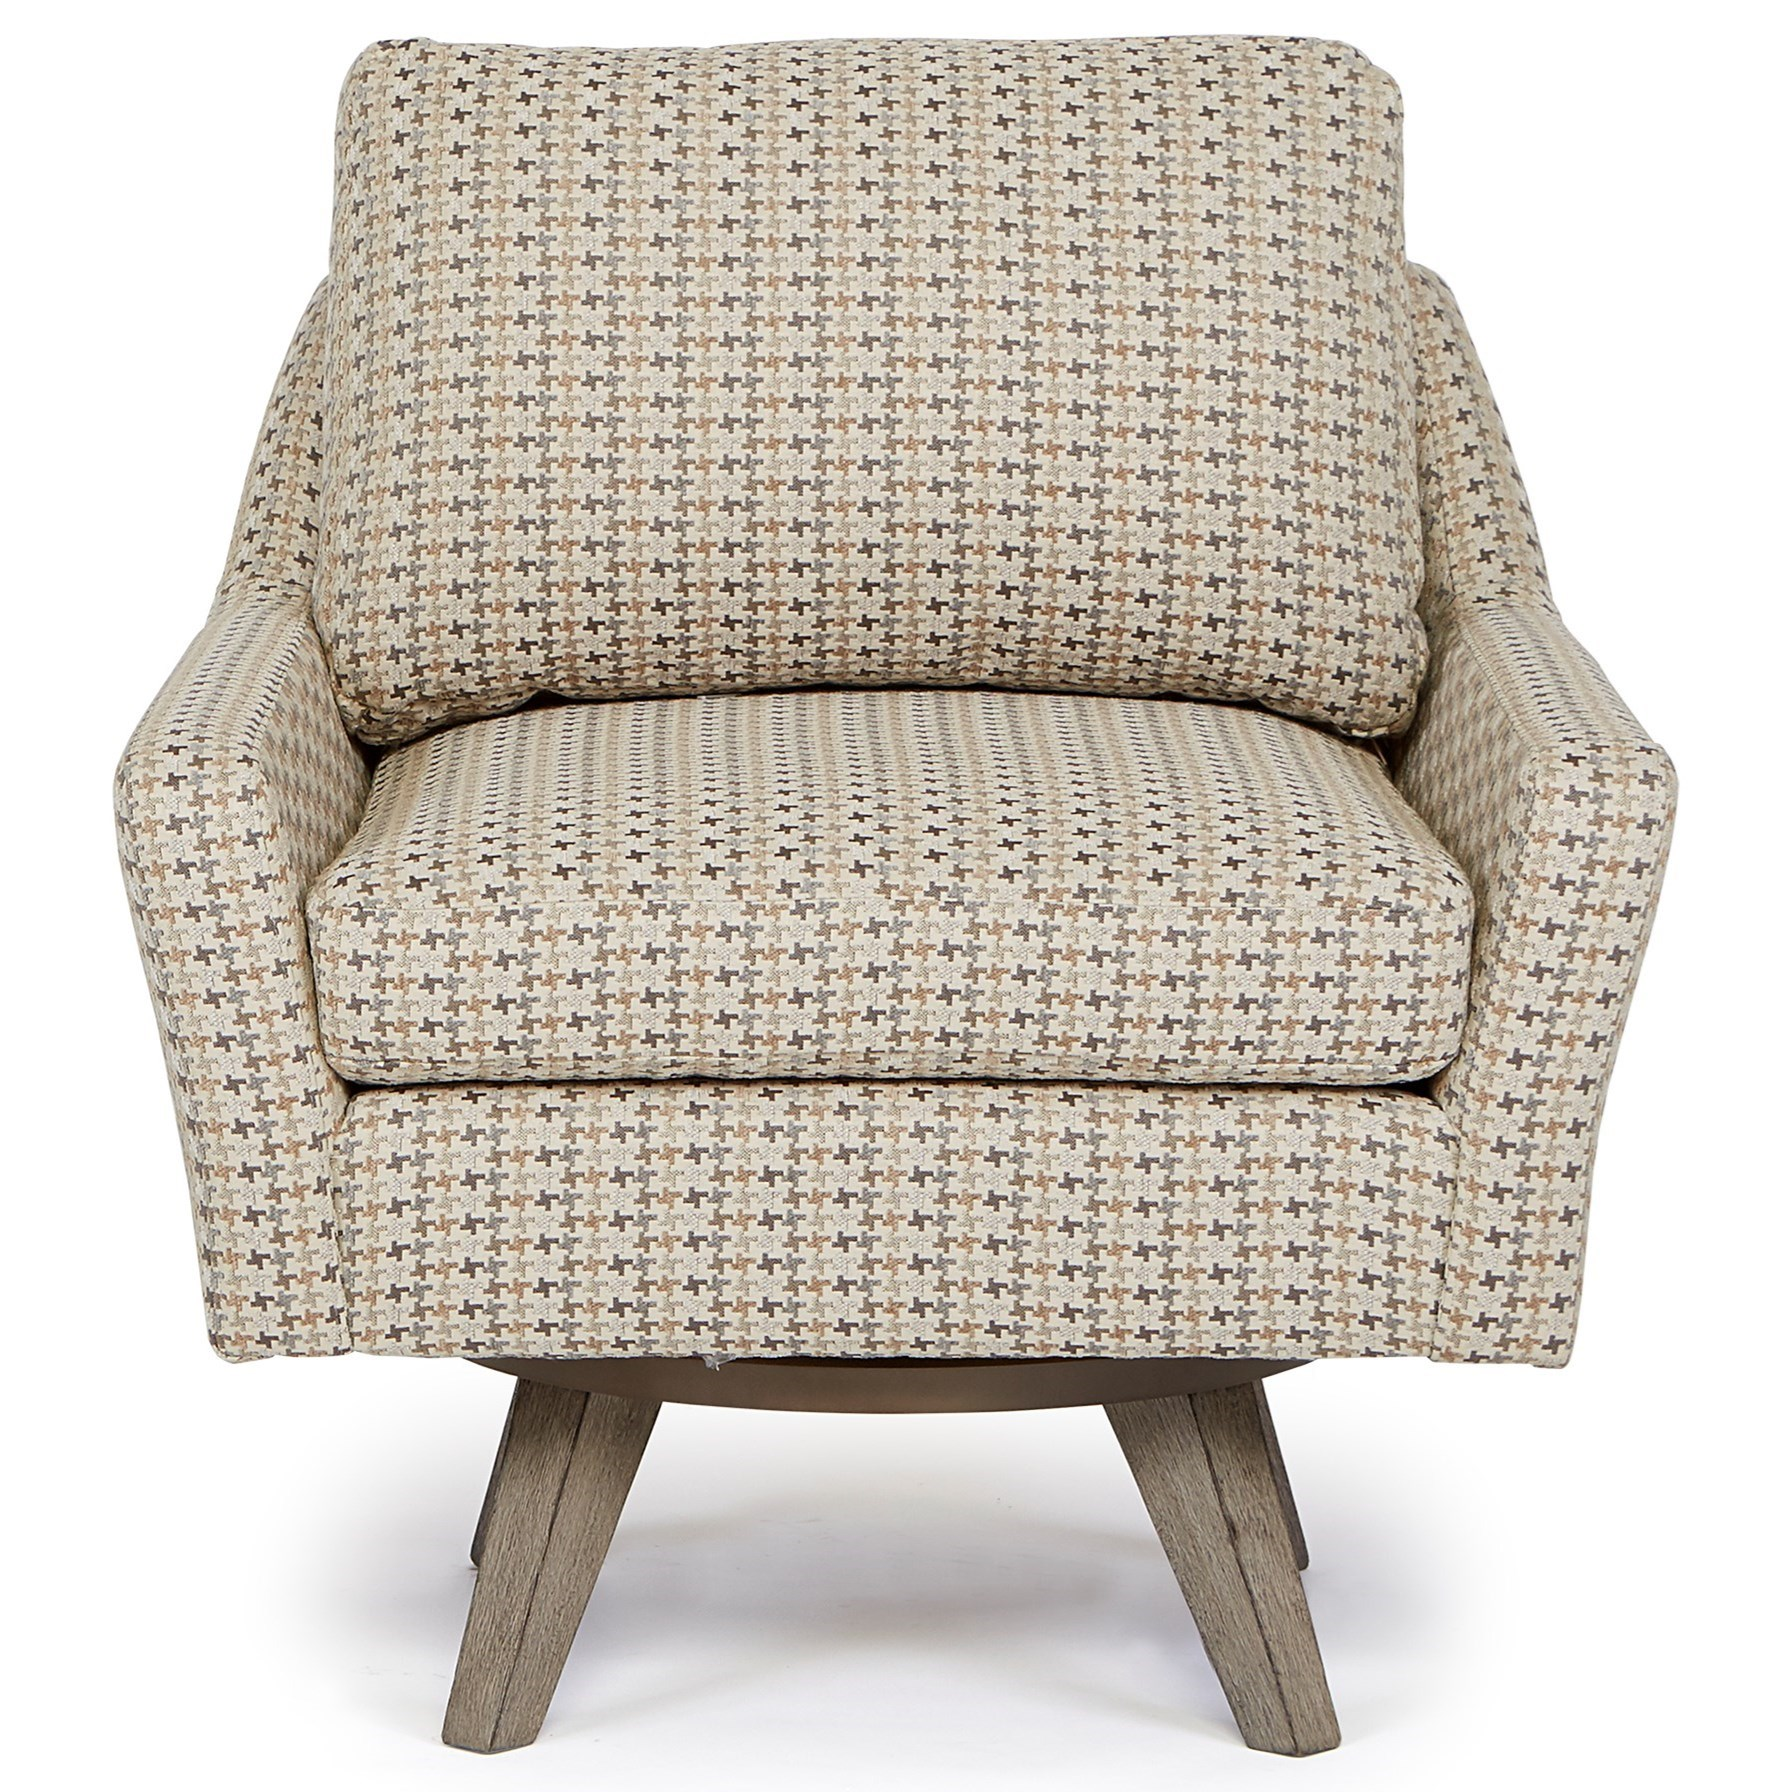 Seymour Mid Century Modern Chair with Swivel Base by Best Home